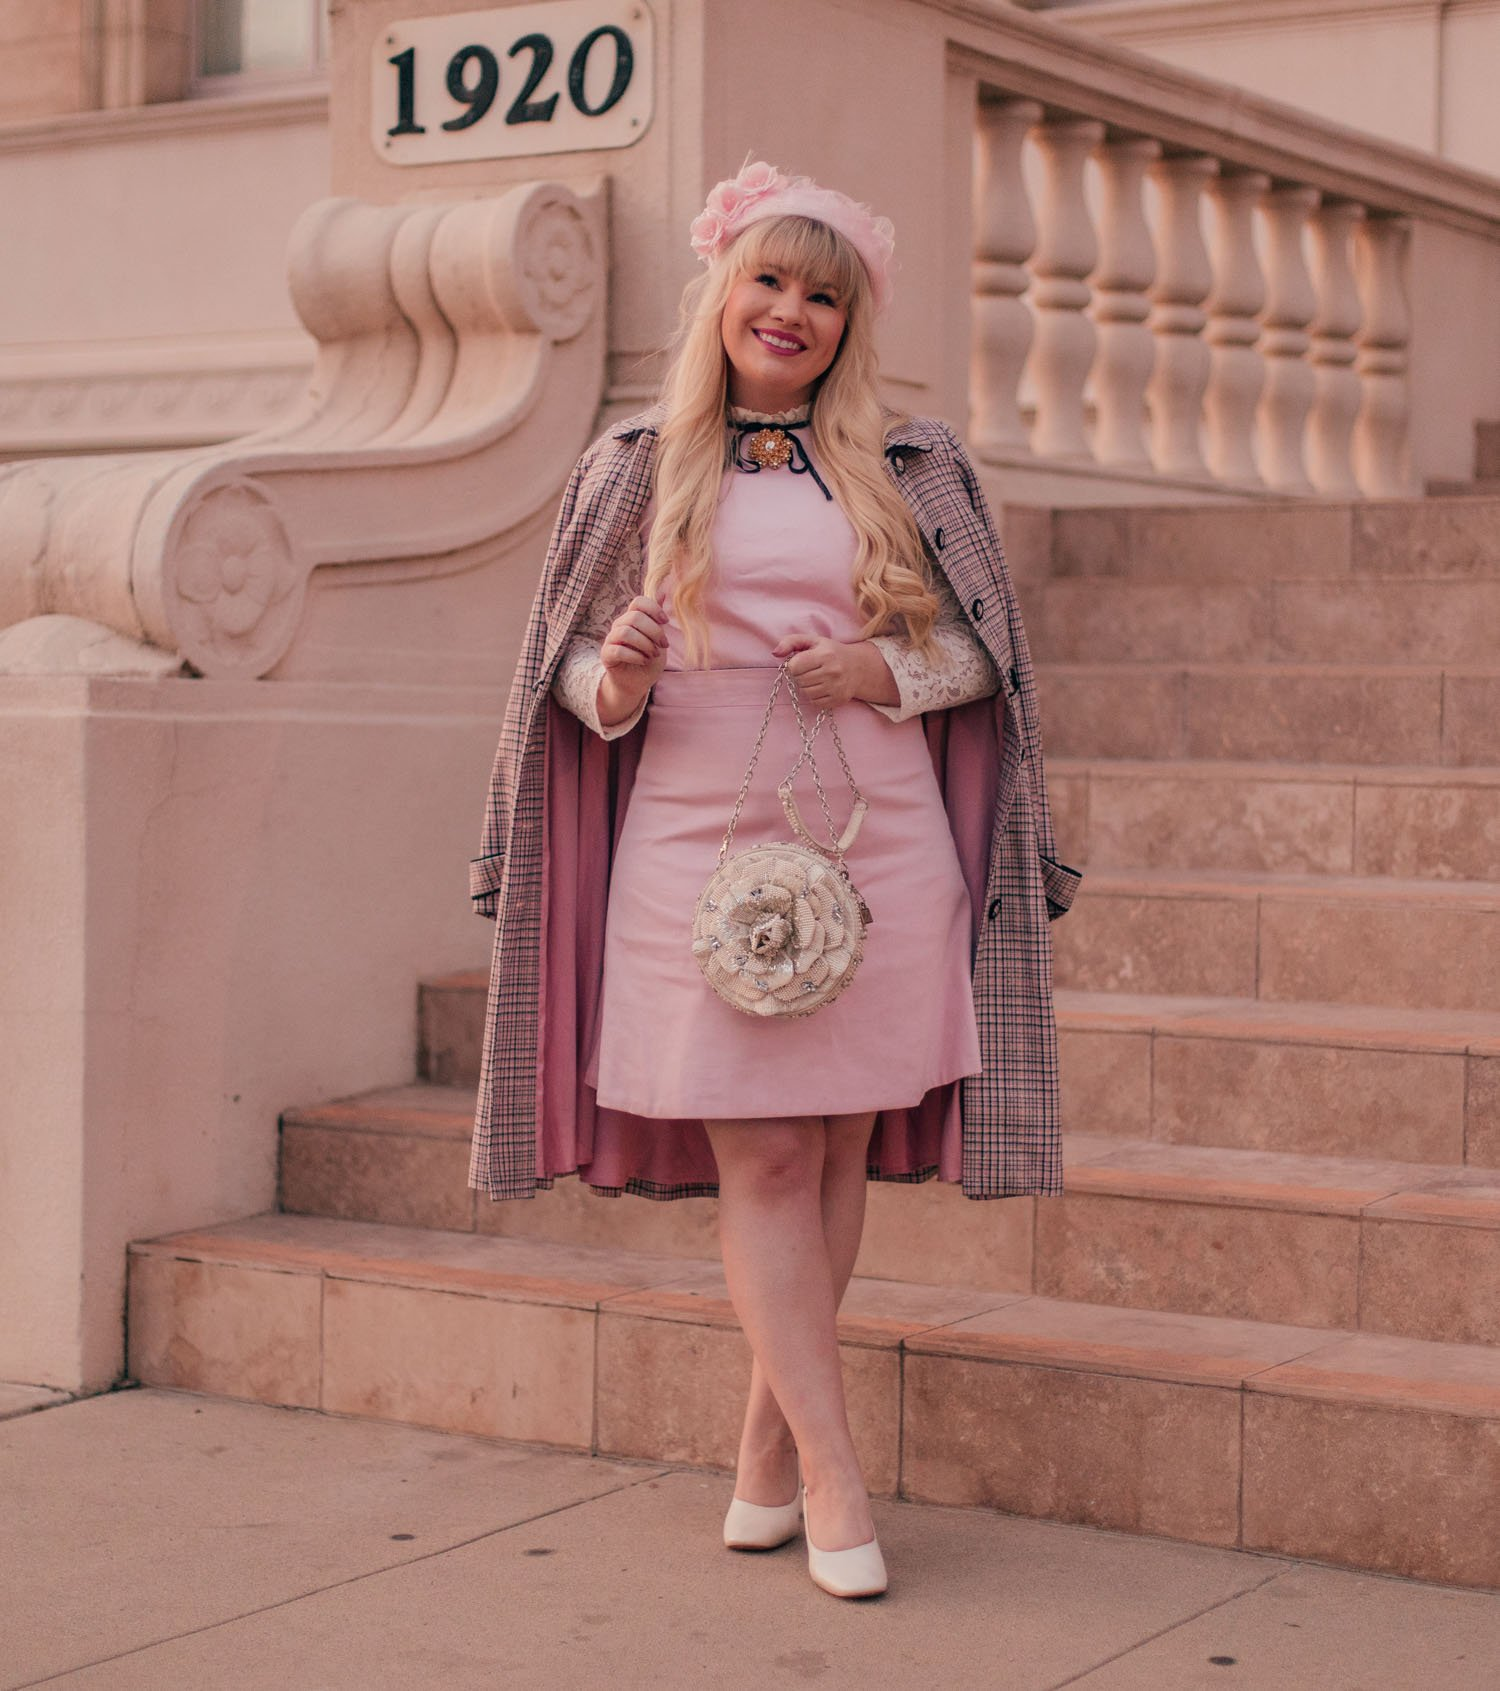 Feminine Fashion Blogger Elizabeth Hugen of Lizzie in Lace wears a girly vintage aesthetic outfit for spring